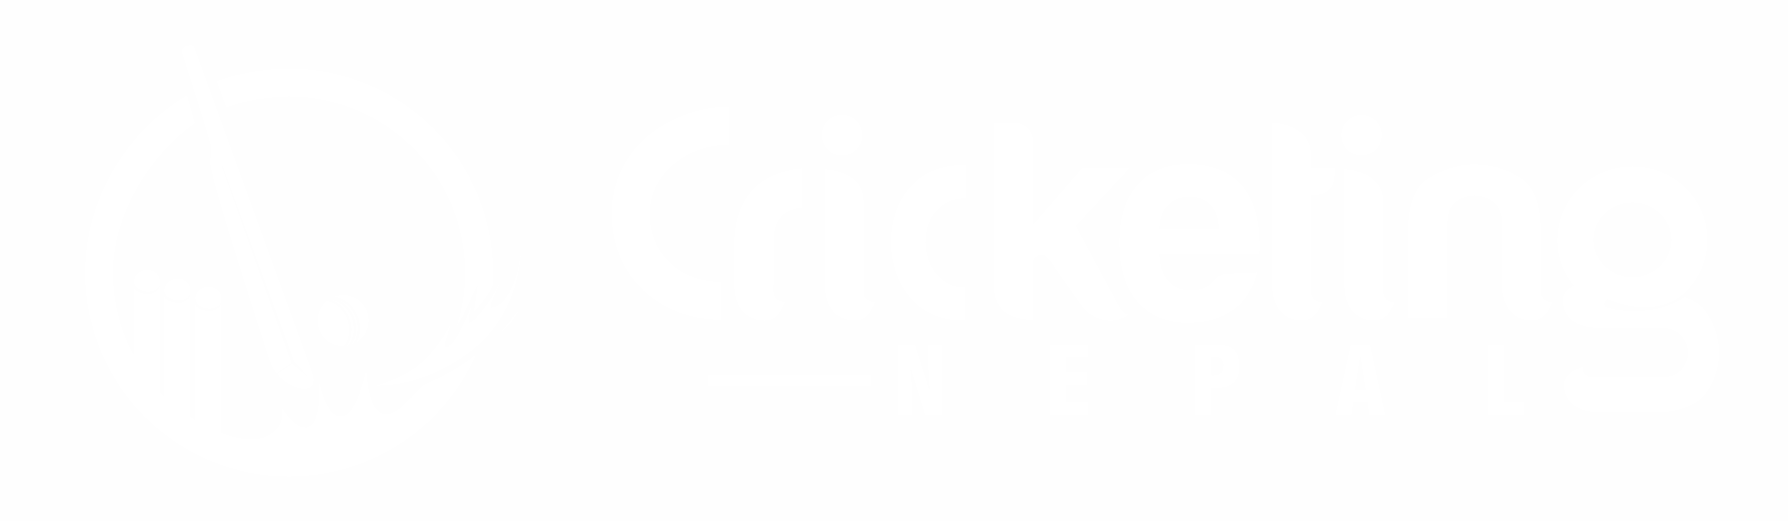 Nepal vs png live scorecard. Cricketingnepal com all about